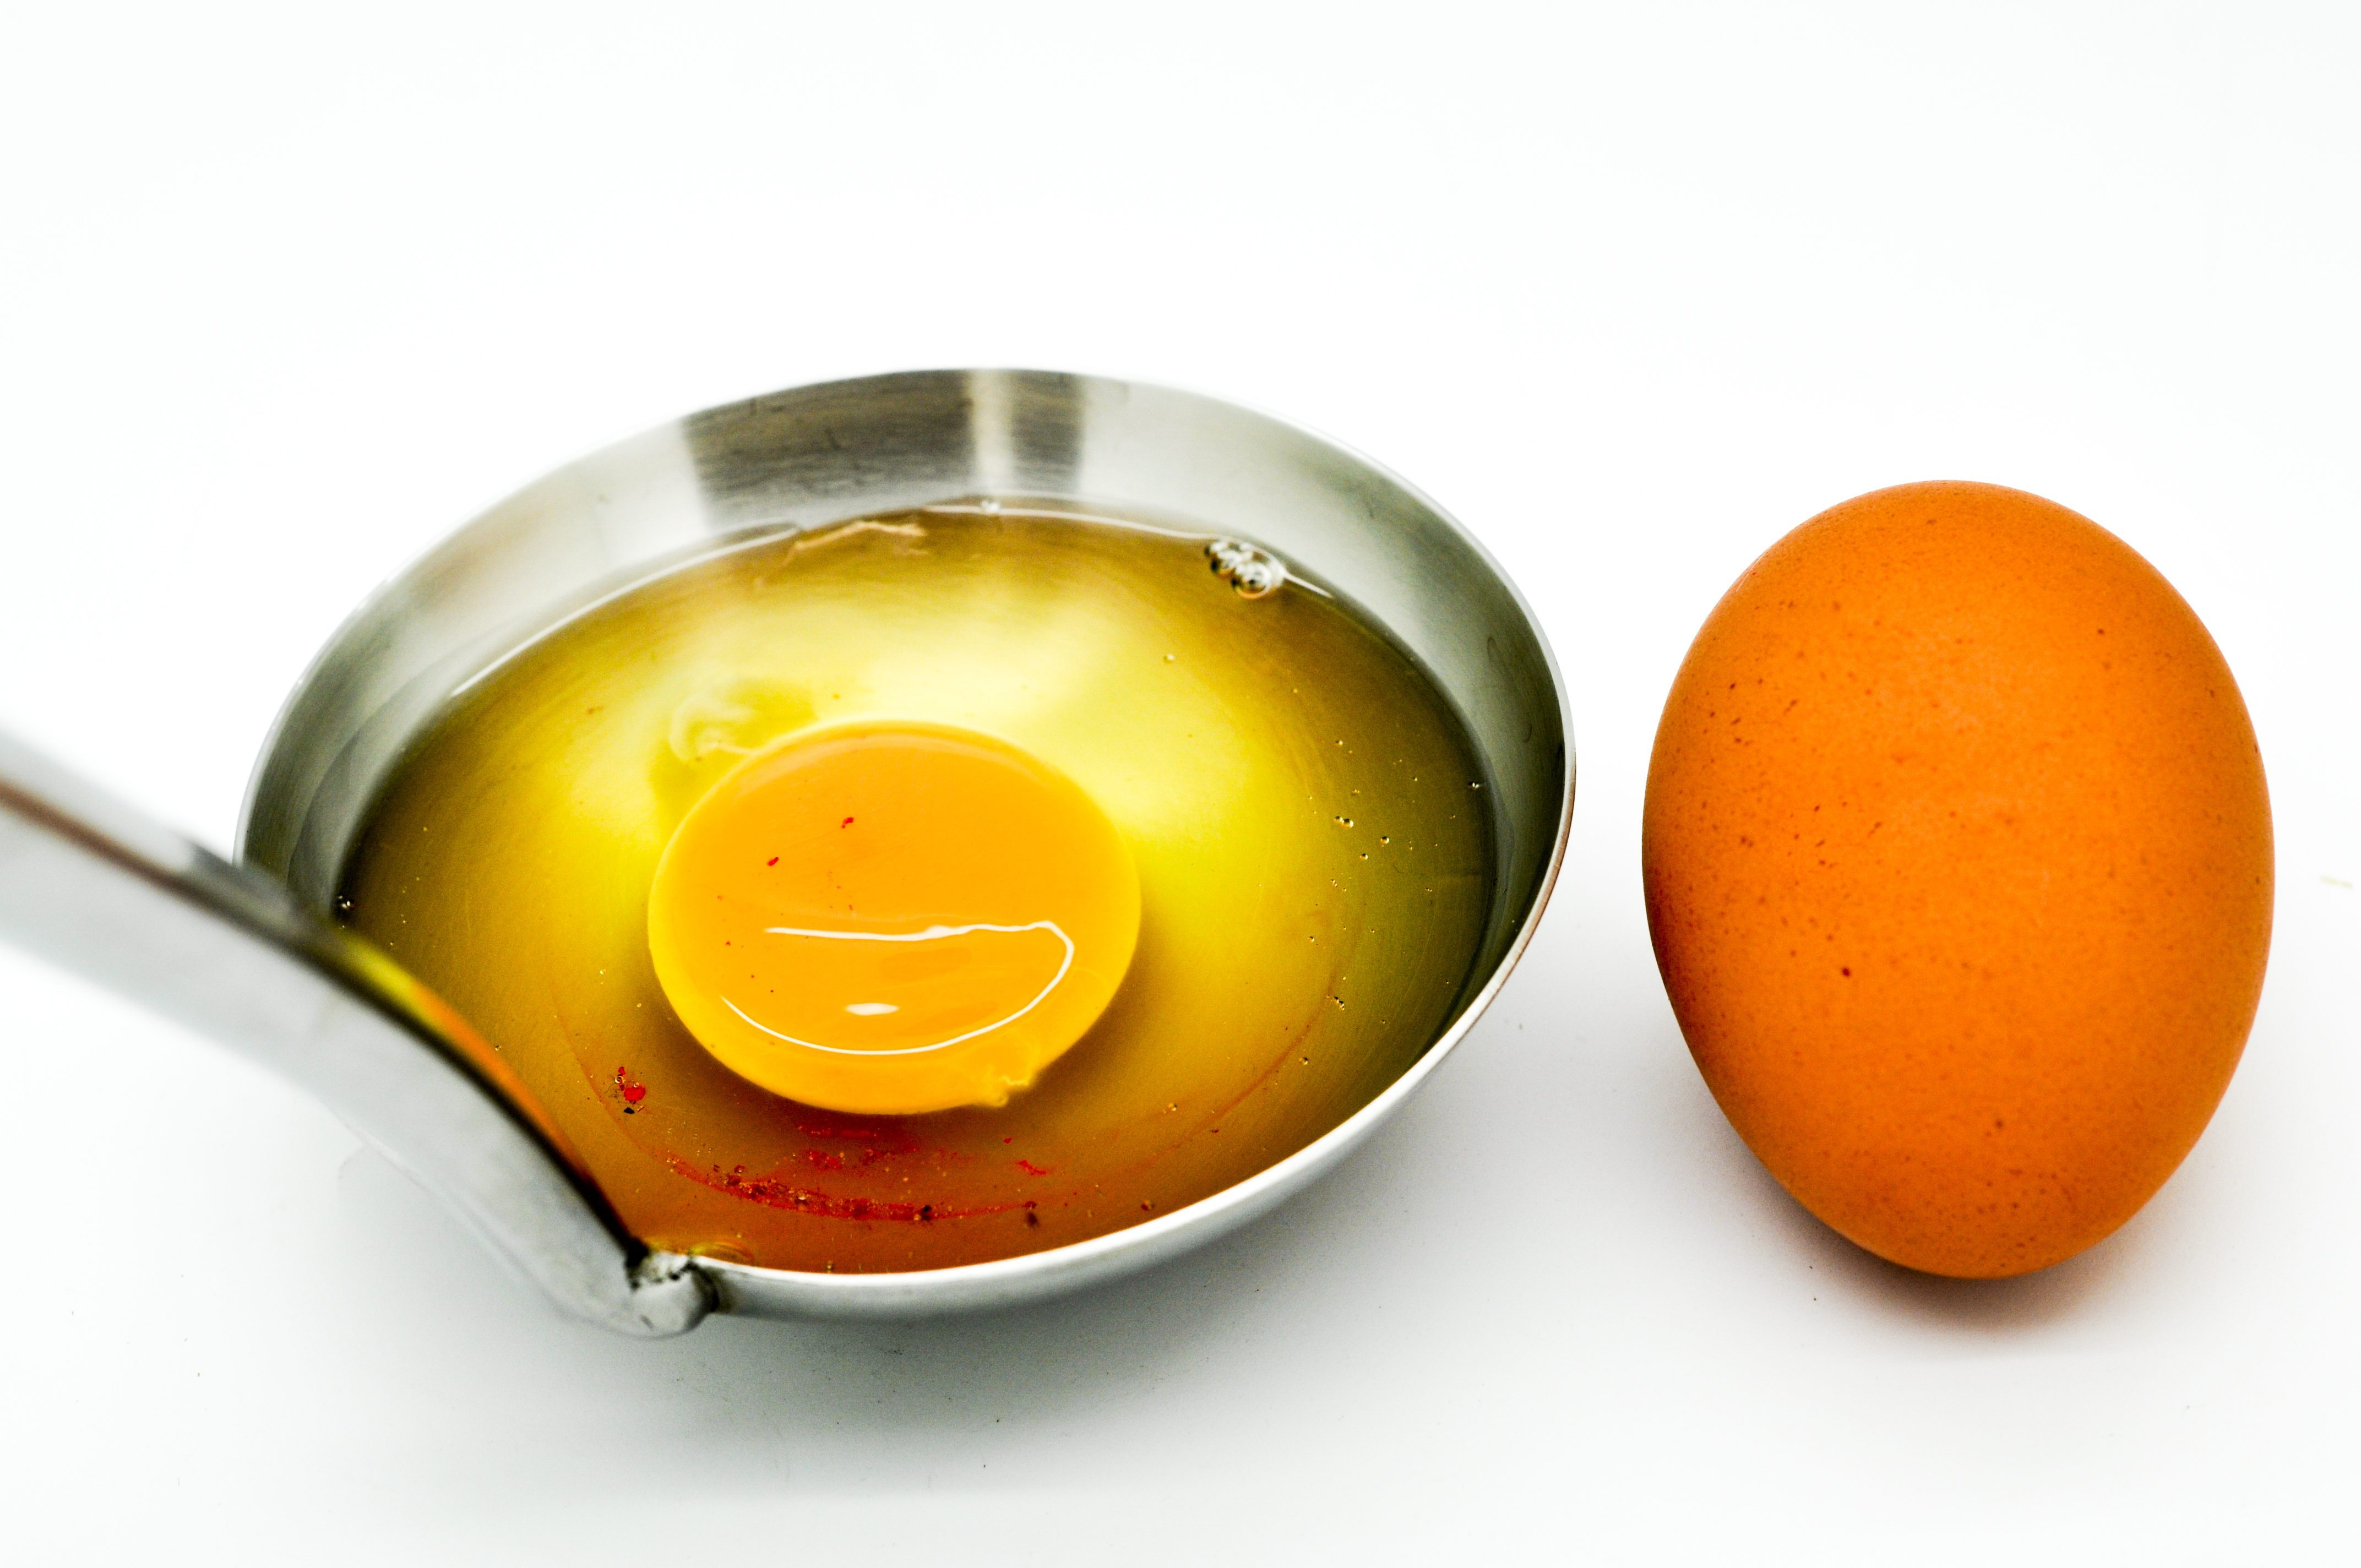 https://www.cookist.com/six-common-egg-myths-that-many-argue-are-factual-and-why-they-arent/